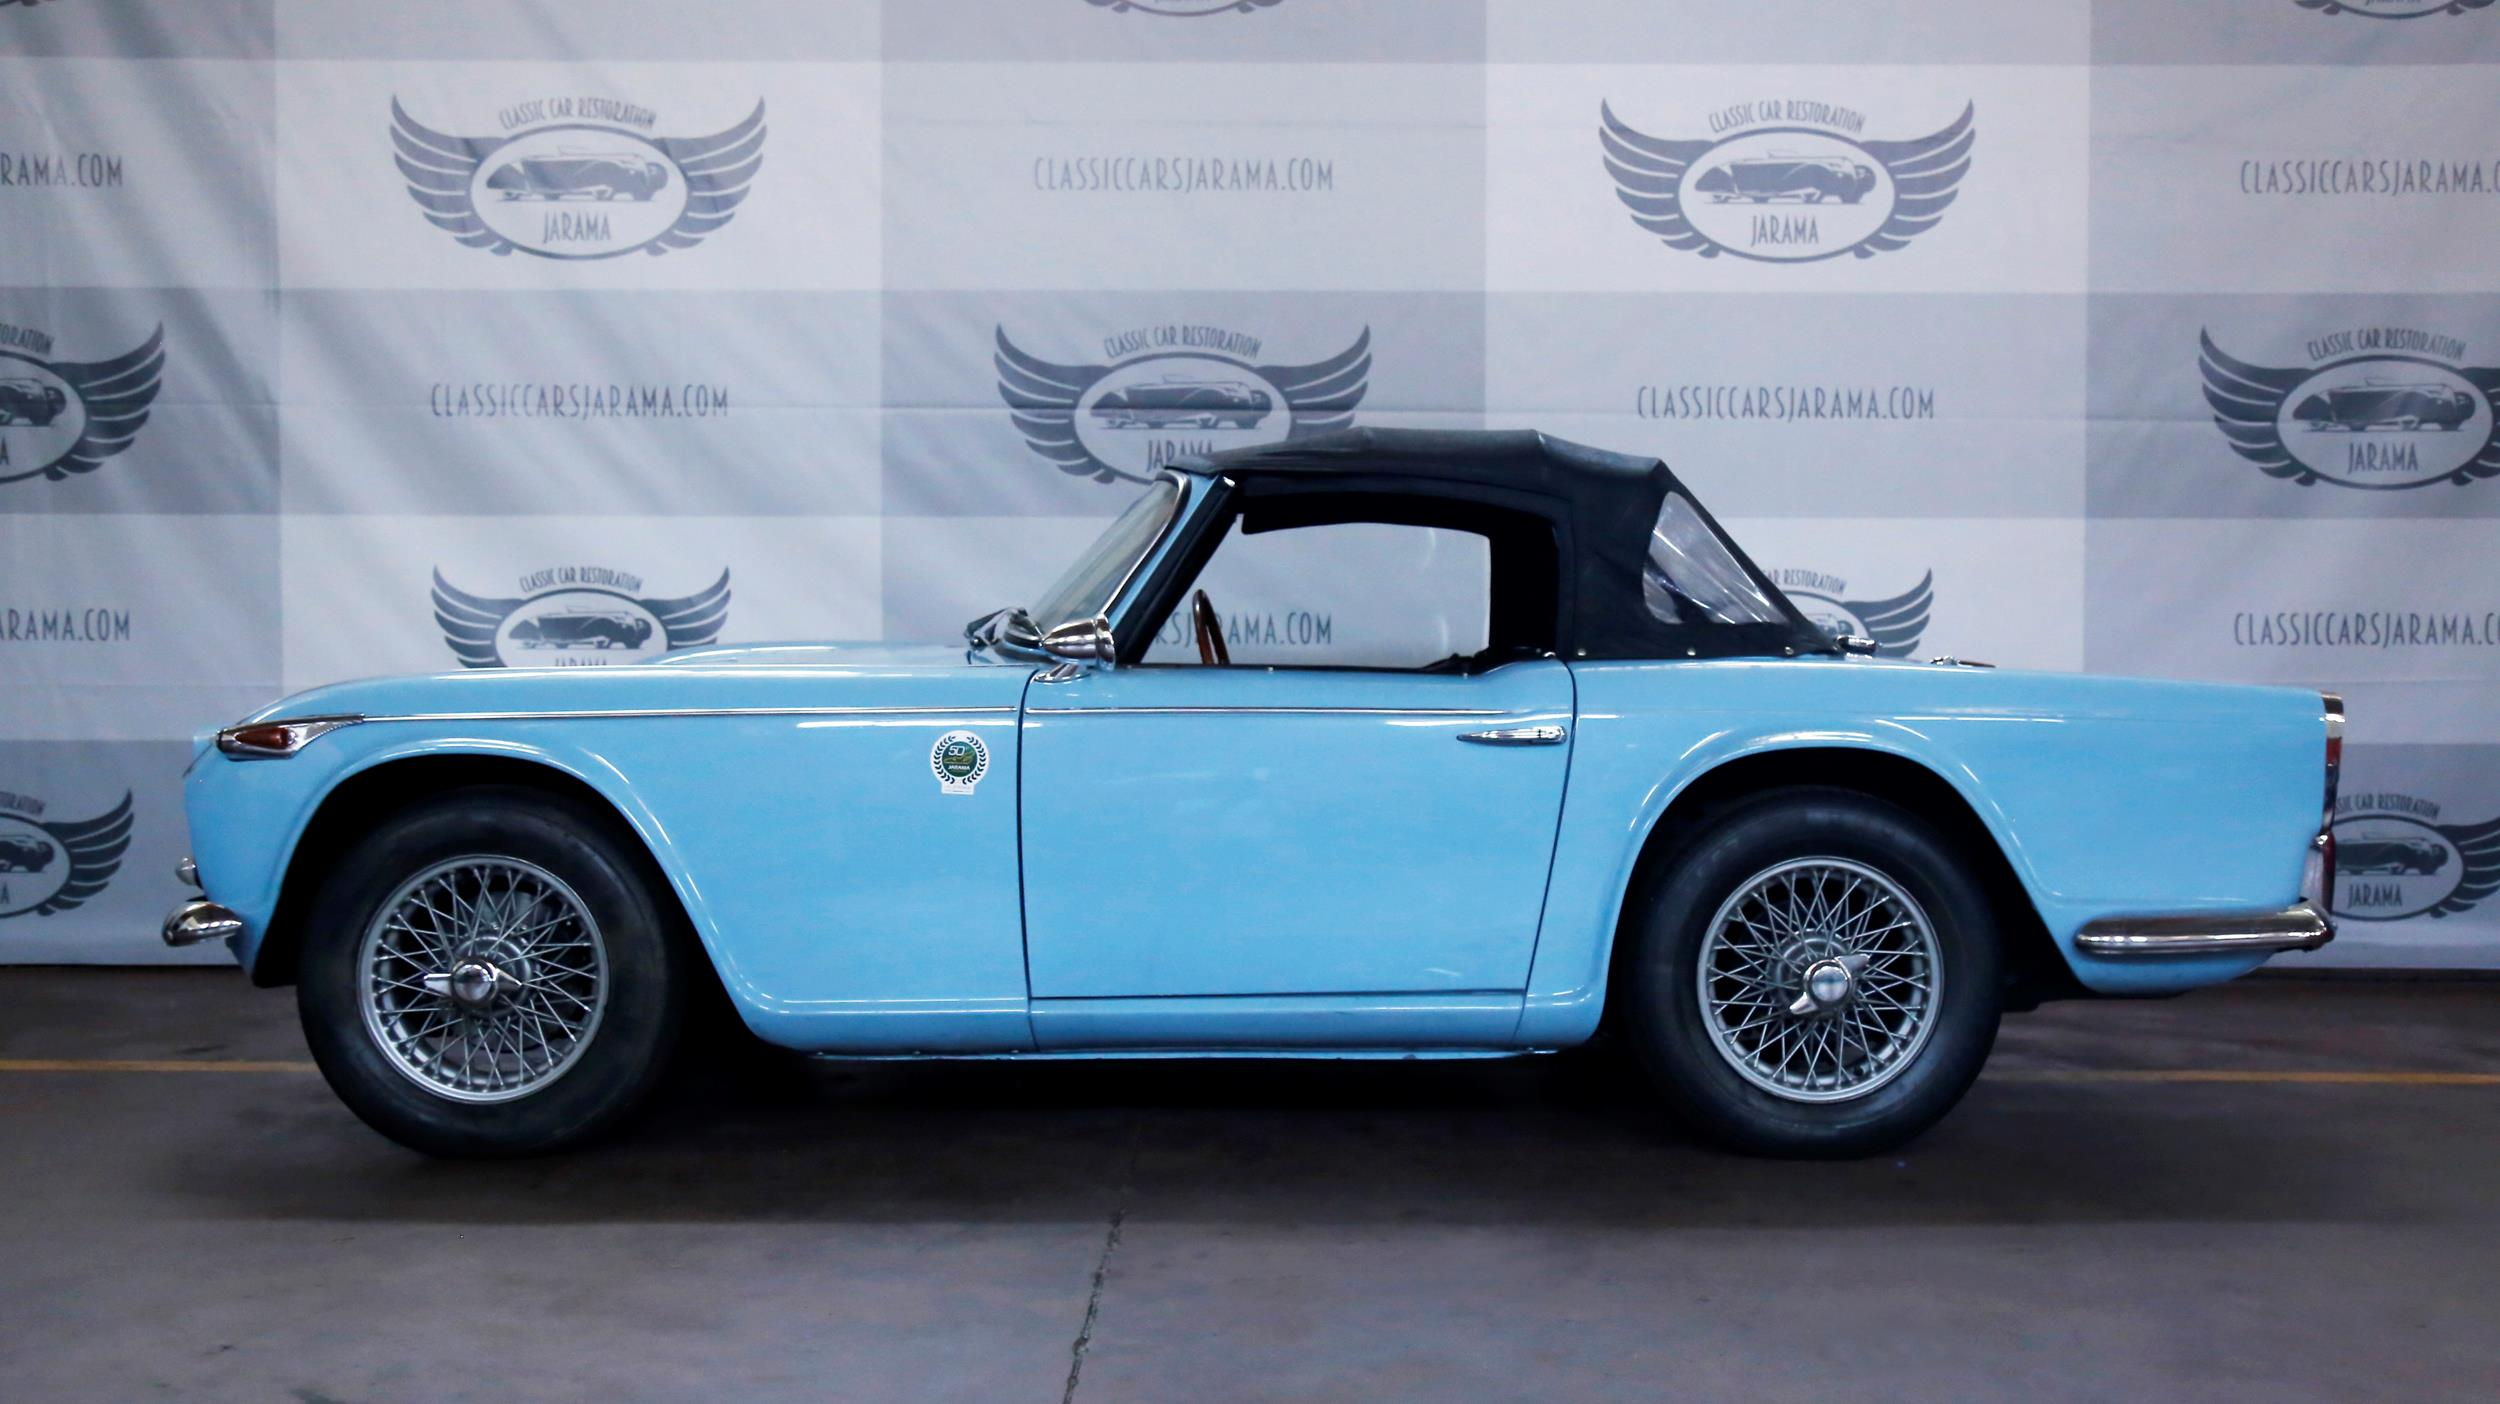 Triumph Tr4a For Sale In Madrid Classic Cars Jarama